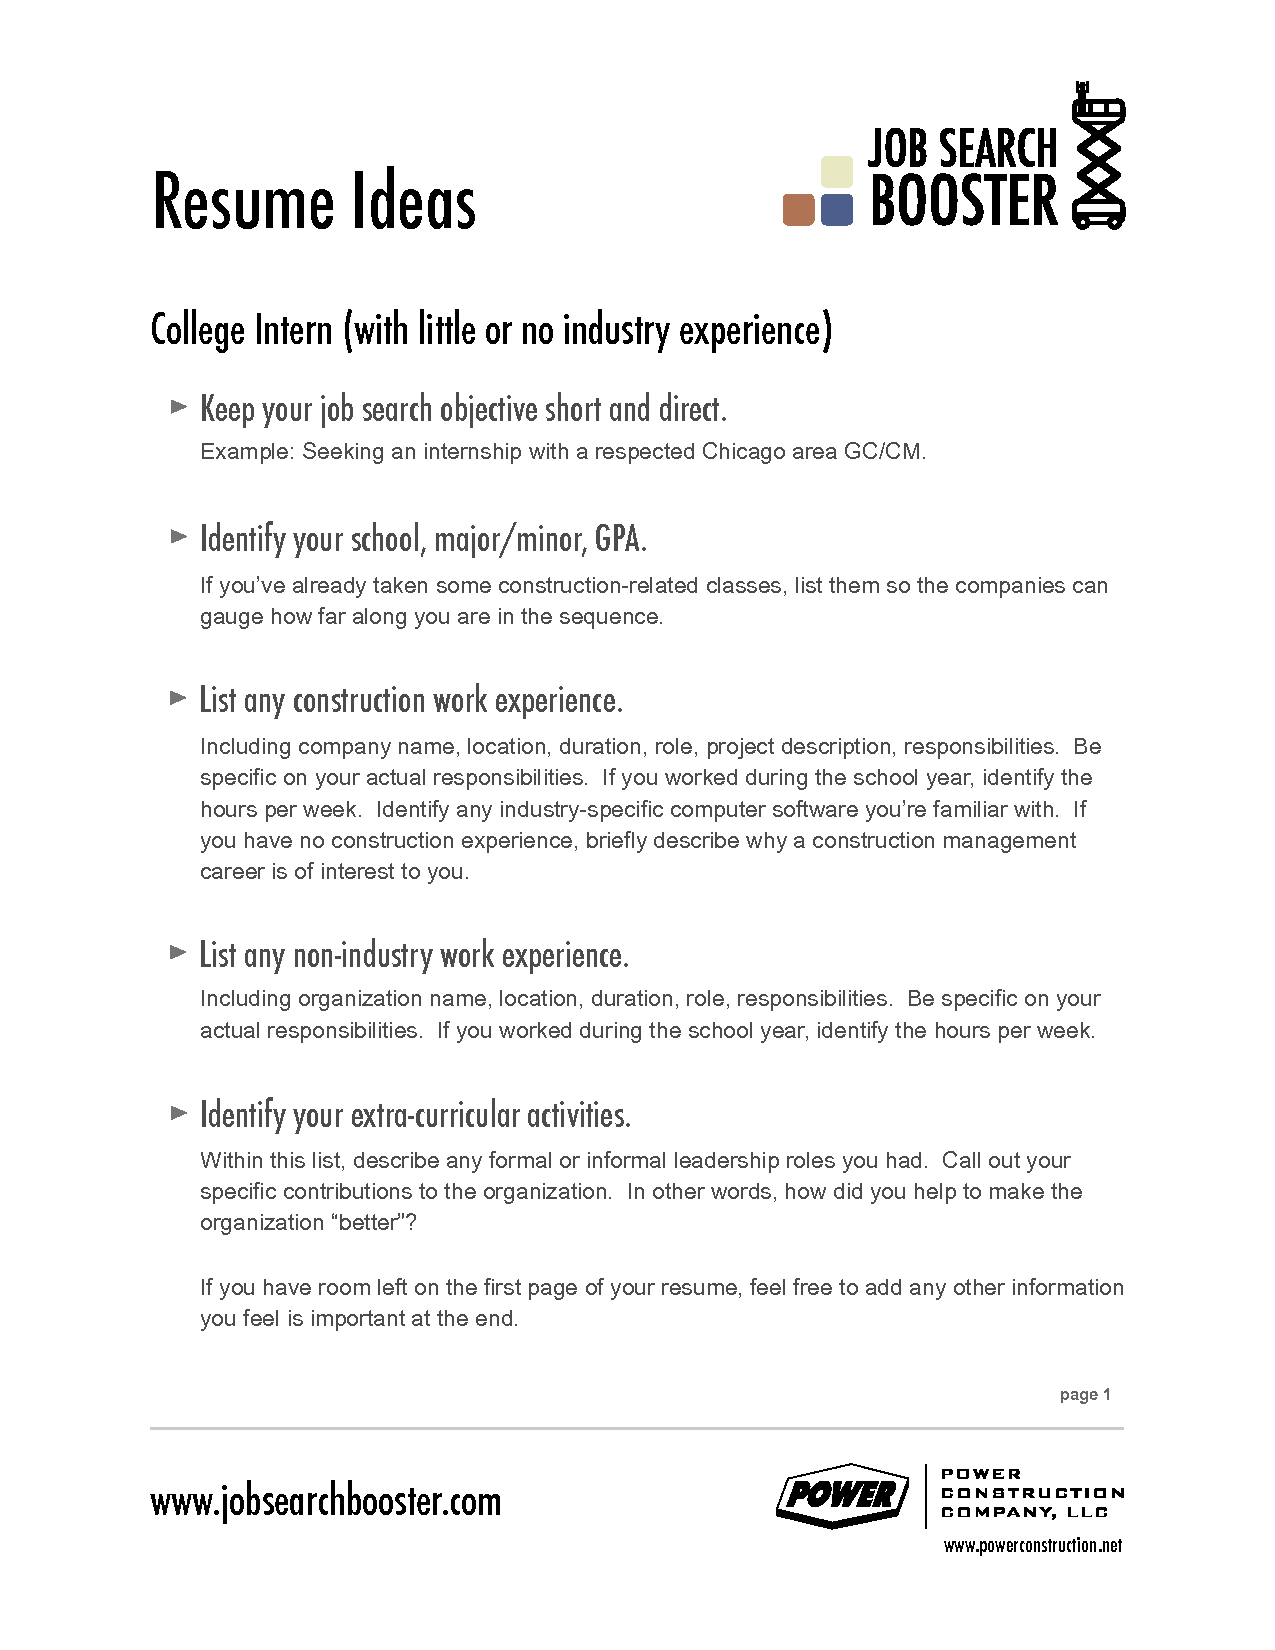 Resume Definition Job Resume Objective Examplesjob Resume Objective Examples  Resumes